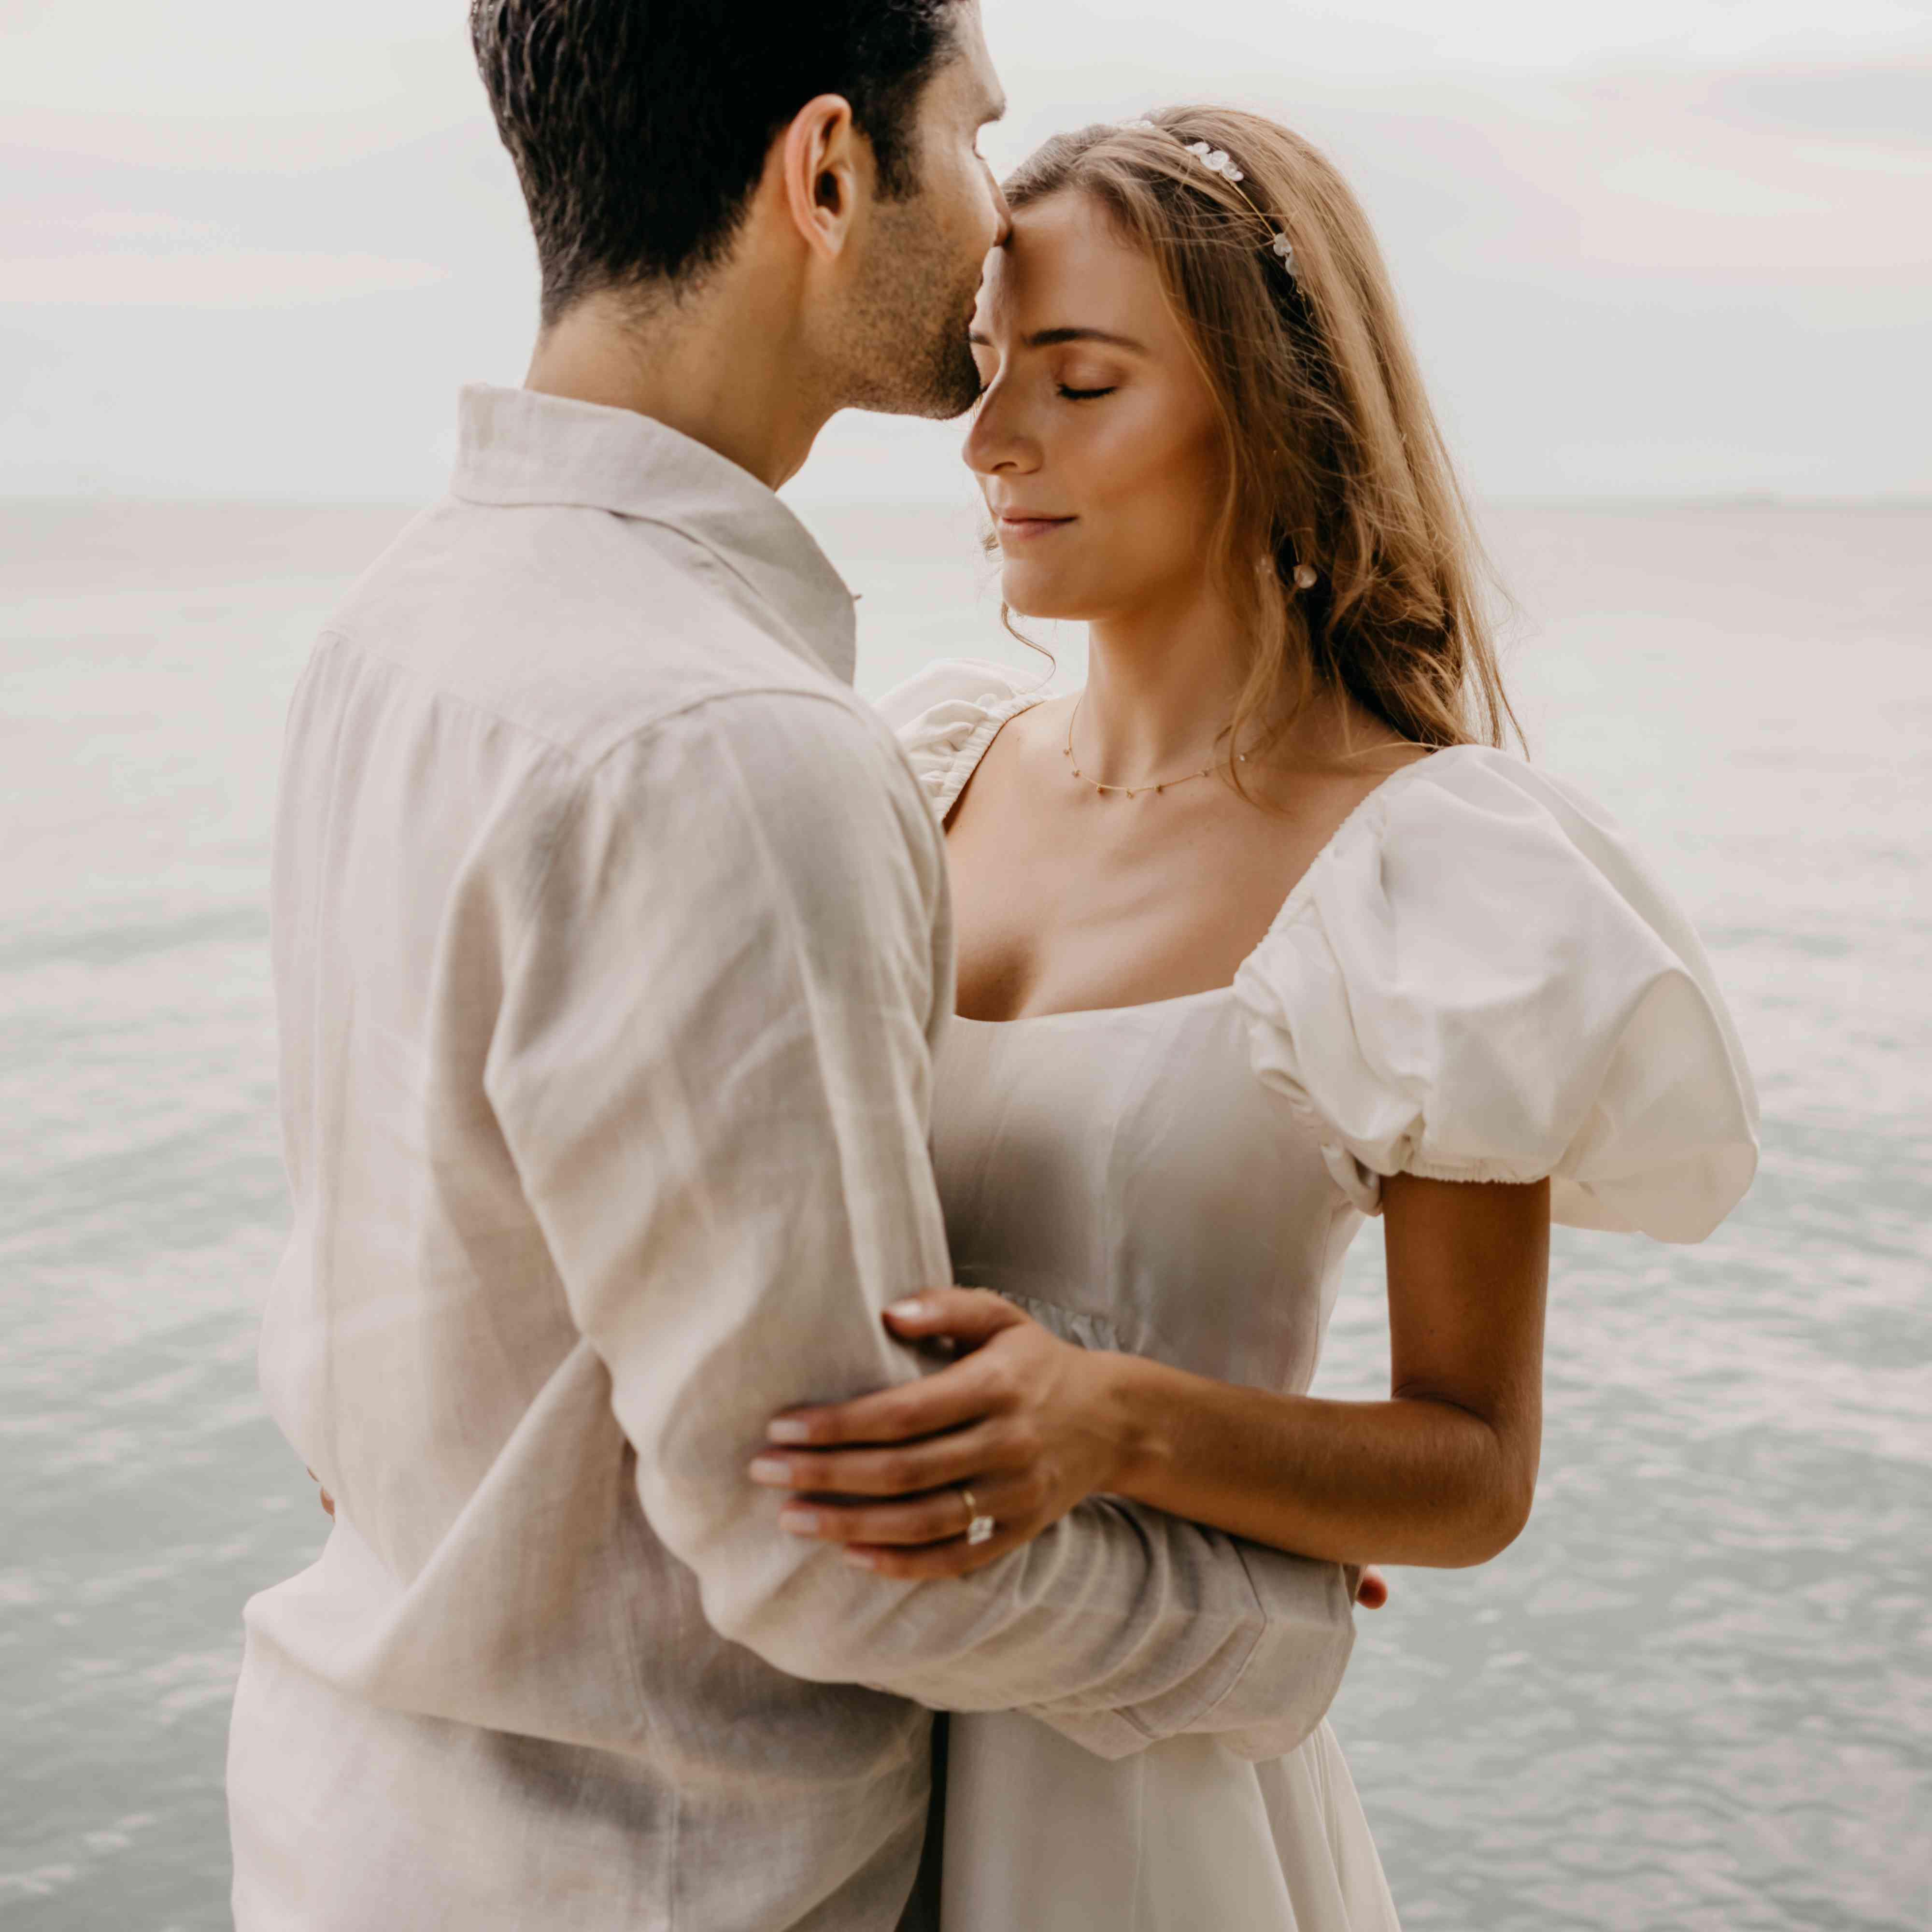 Couple embracing in front of ocean